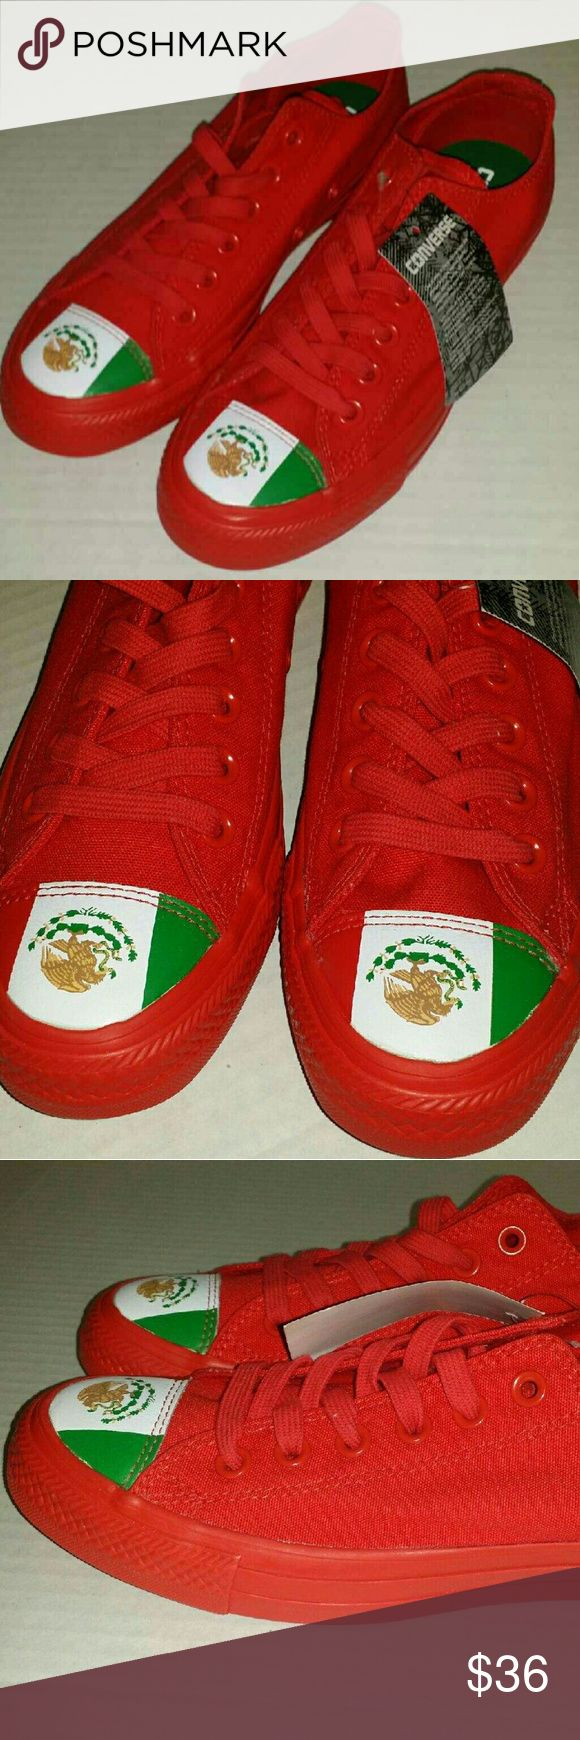 Red Converse Mexican flag toe Red Converse with Mexican flag on toe. Unisex. Size 5 mens. 7 Womens.  Shoes are new without box. They have a converse tag attached. Last picture shows some spots of  manufacturers shoe glue on the toe. It is not very noticeable. Converse Shoes Sneakers